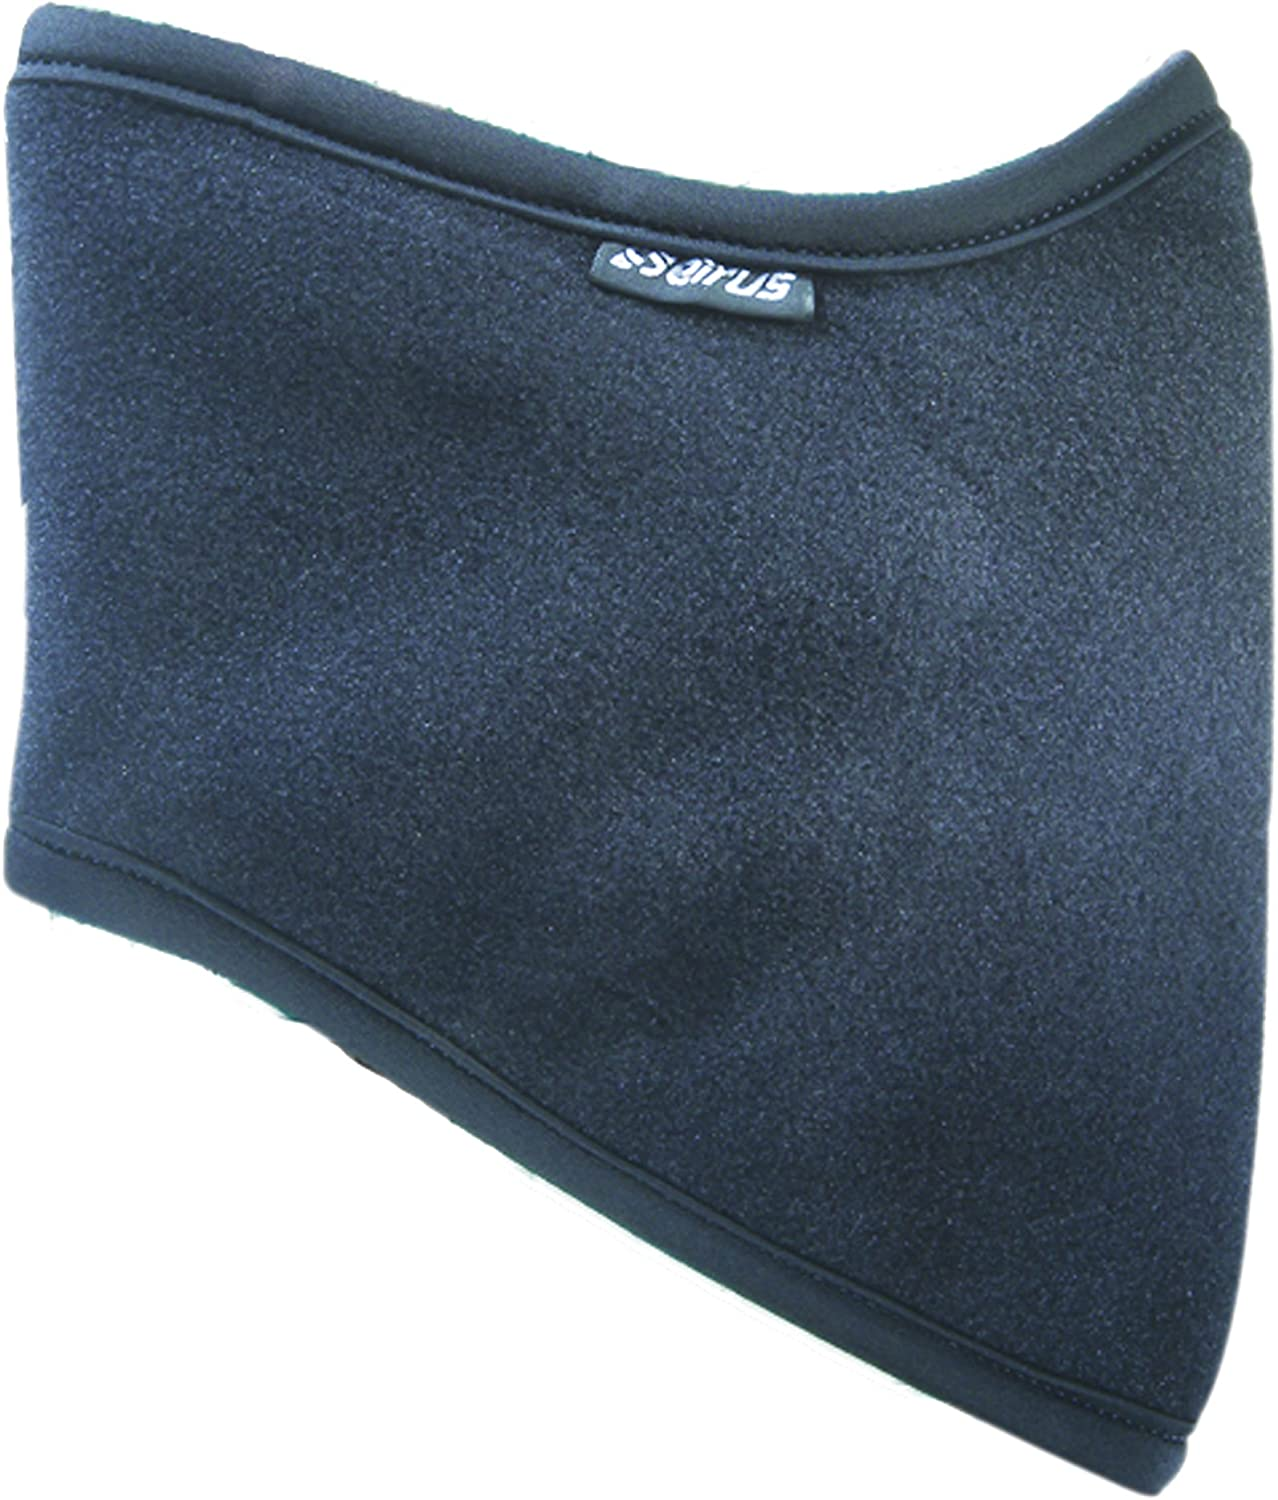 Seirus Innovation 2701 Polar Scarf for Face and Neck Protection